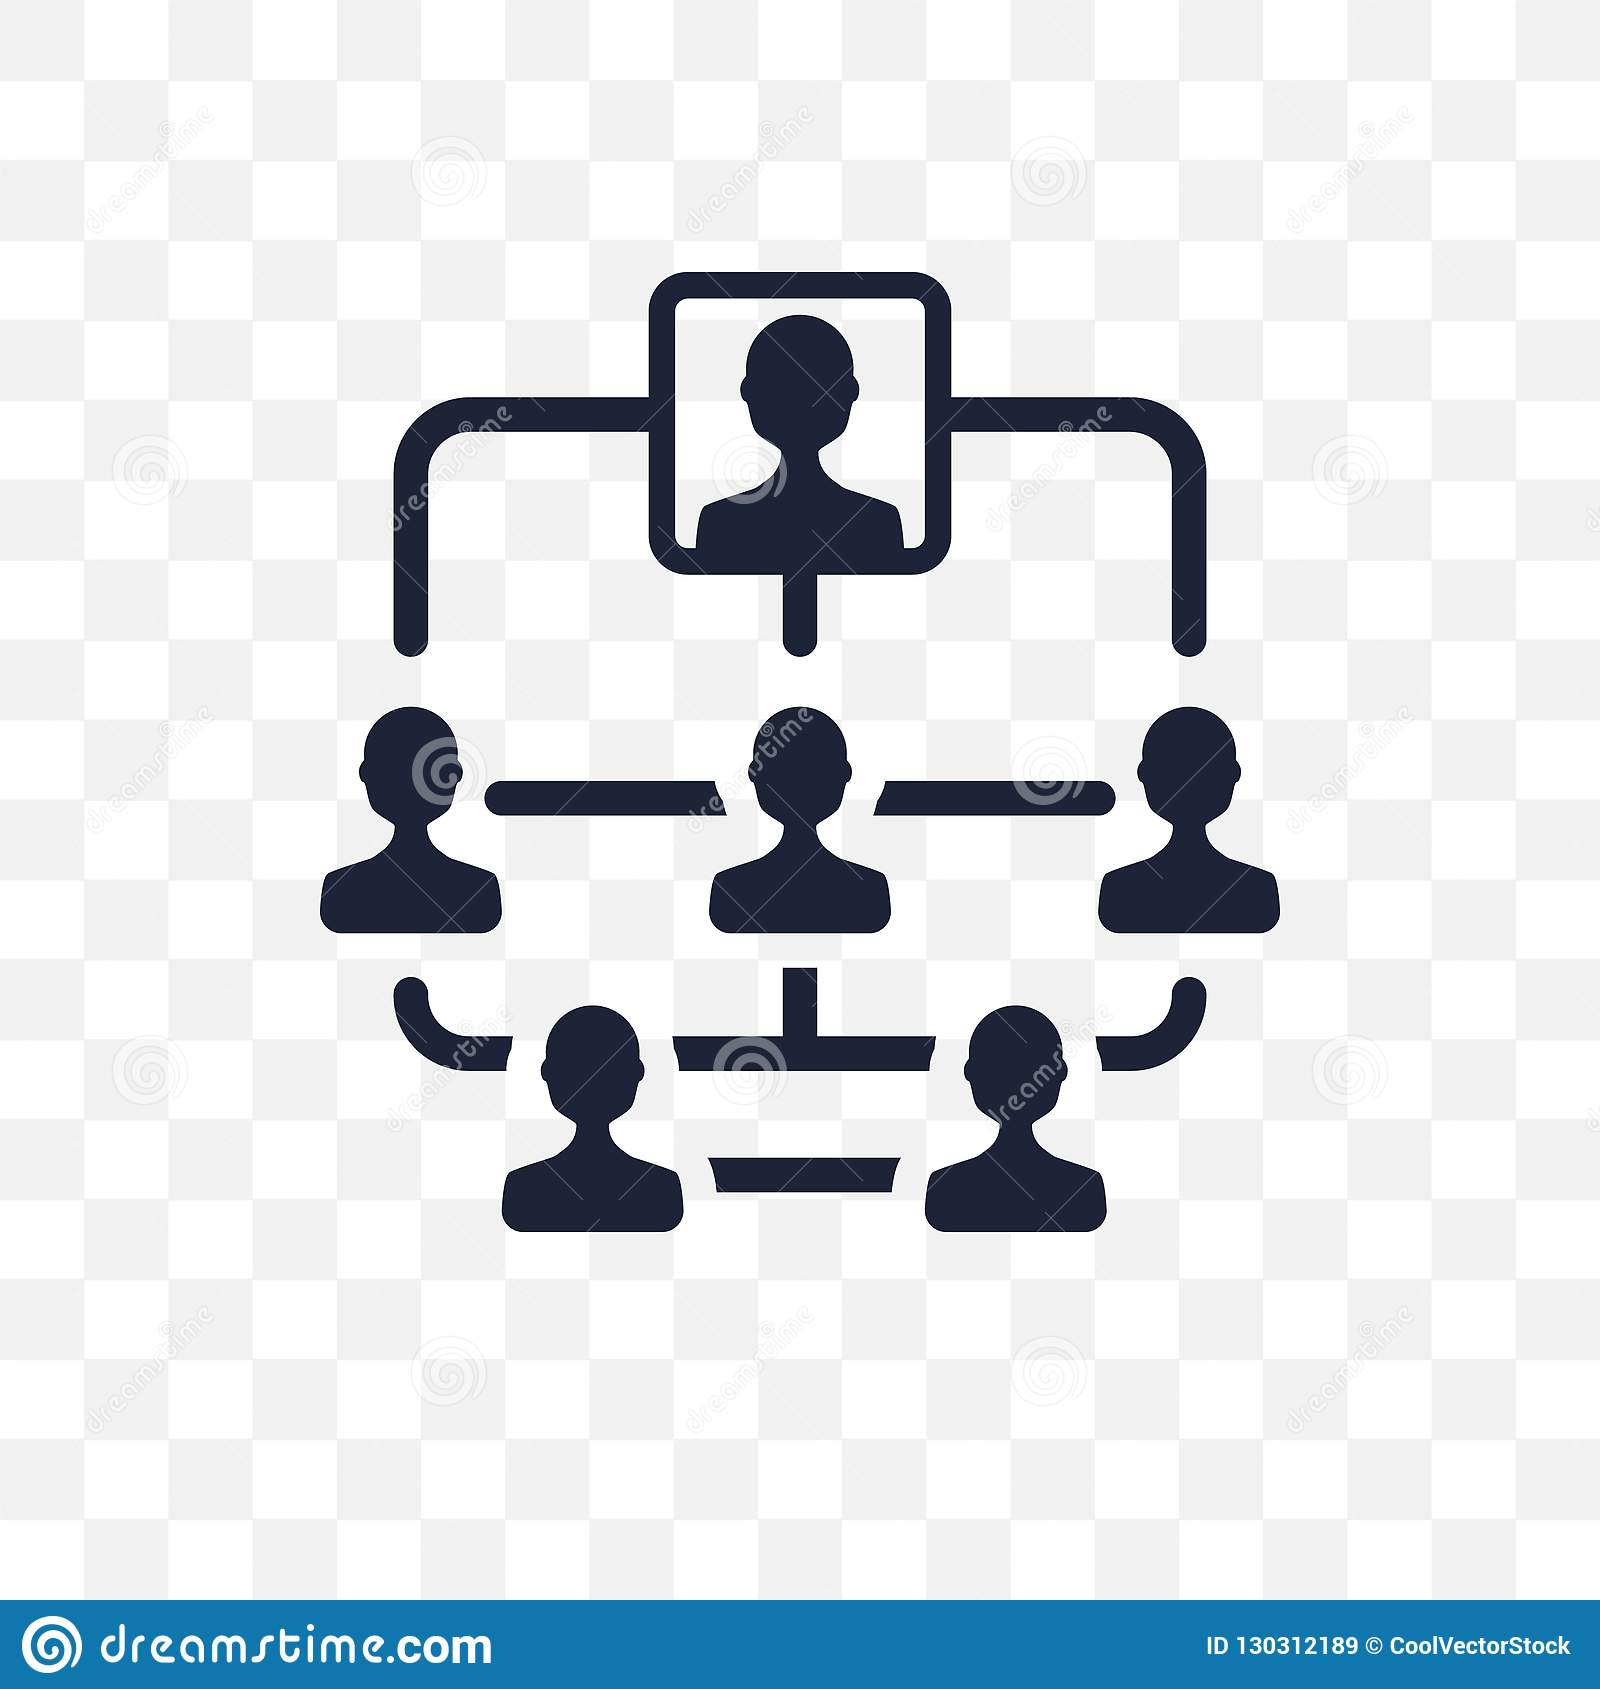 Hierarchical structure transparent icon. Hierarchical structure